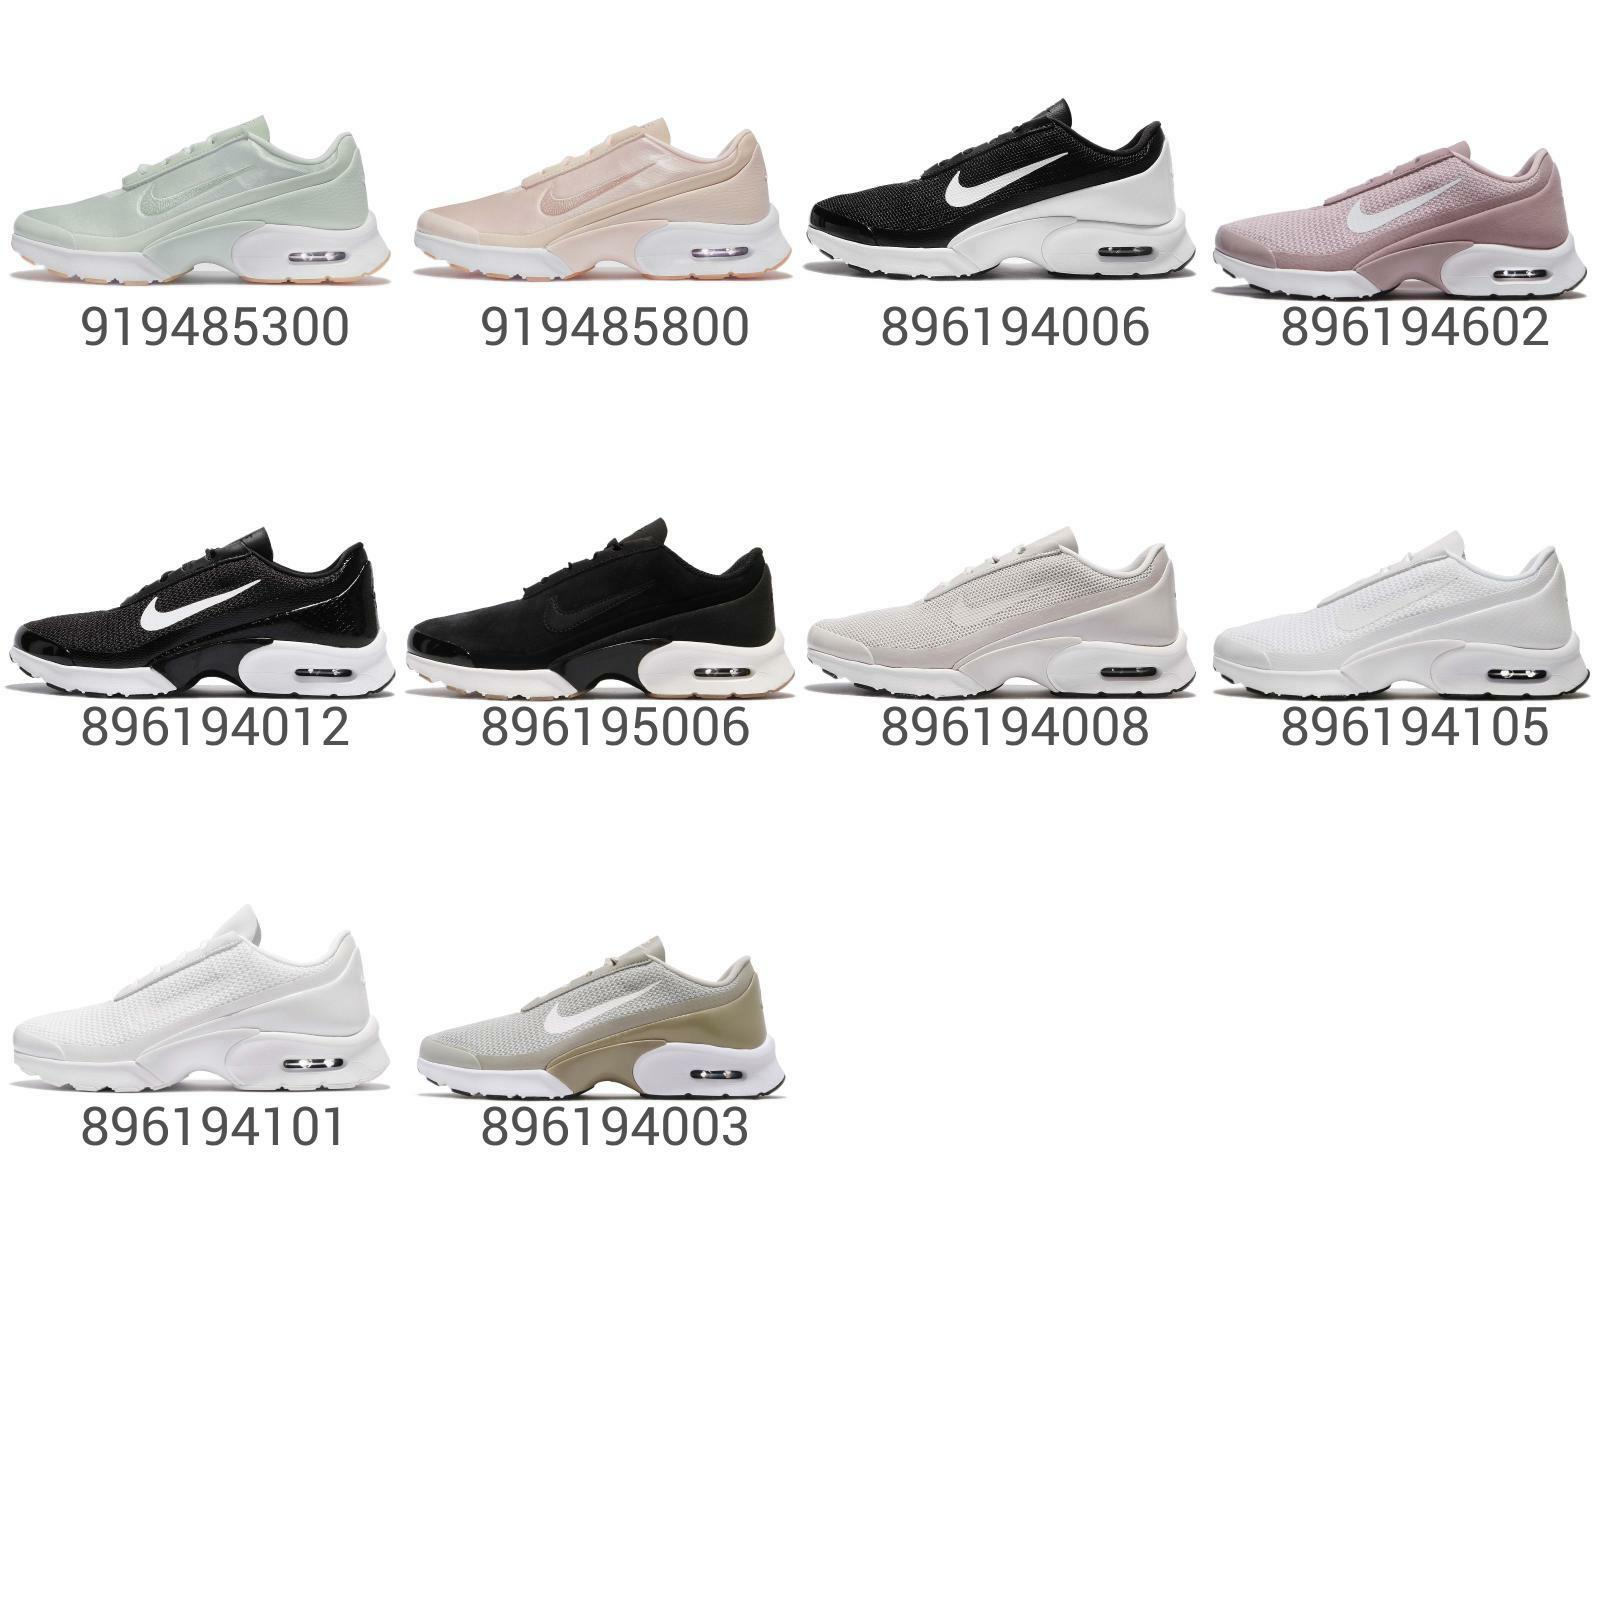 size 40 b76b5 8d60e Wmns Nike Air Max Max Max Jewell Wo Running Shoes Lifestyle Sneakers Pick 1  a96d79